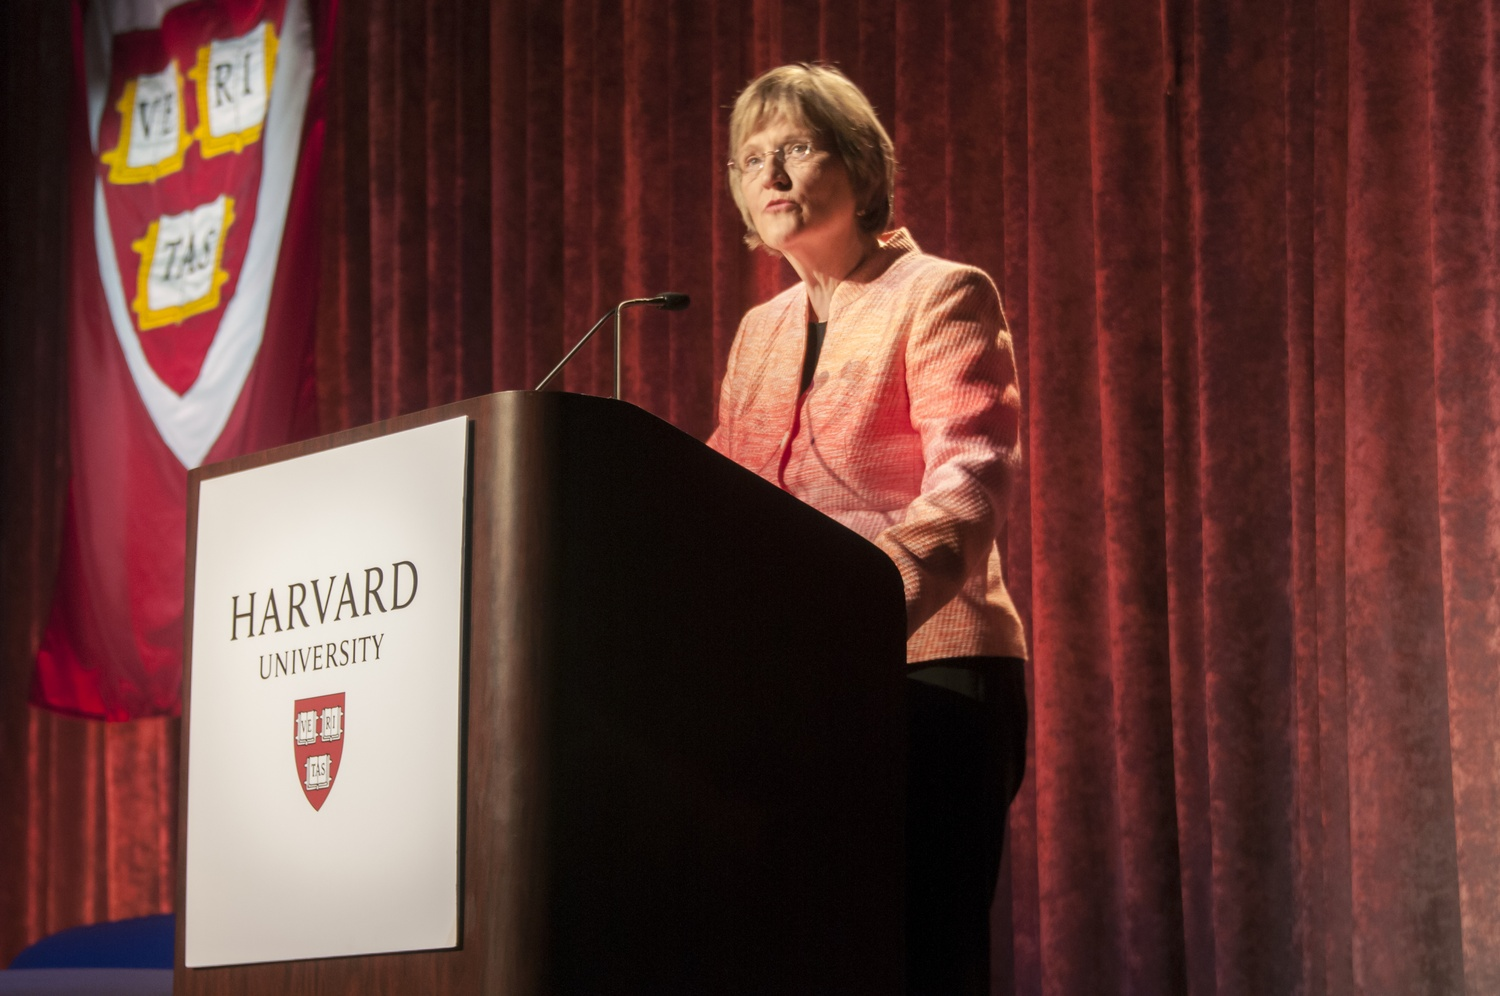 University President Drew G. Faust provides the keynote speech at the Your Harvard: New York event organized by the Harvard Alumni Association on the USS Intrepid in New York City.